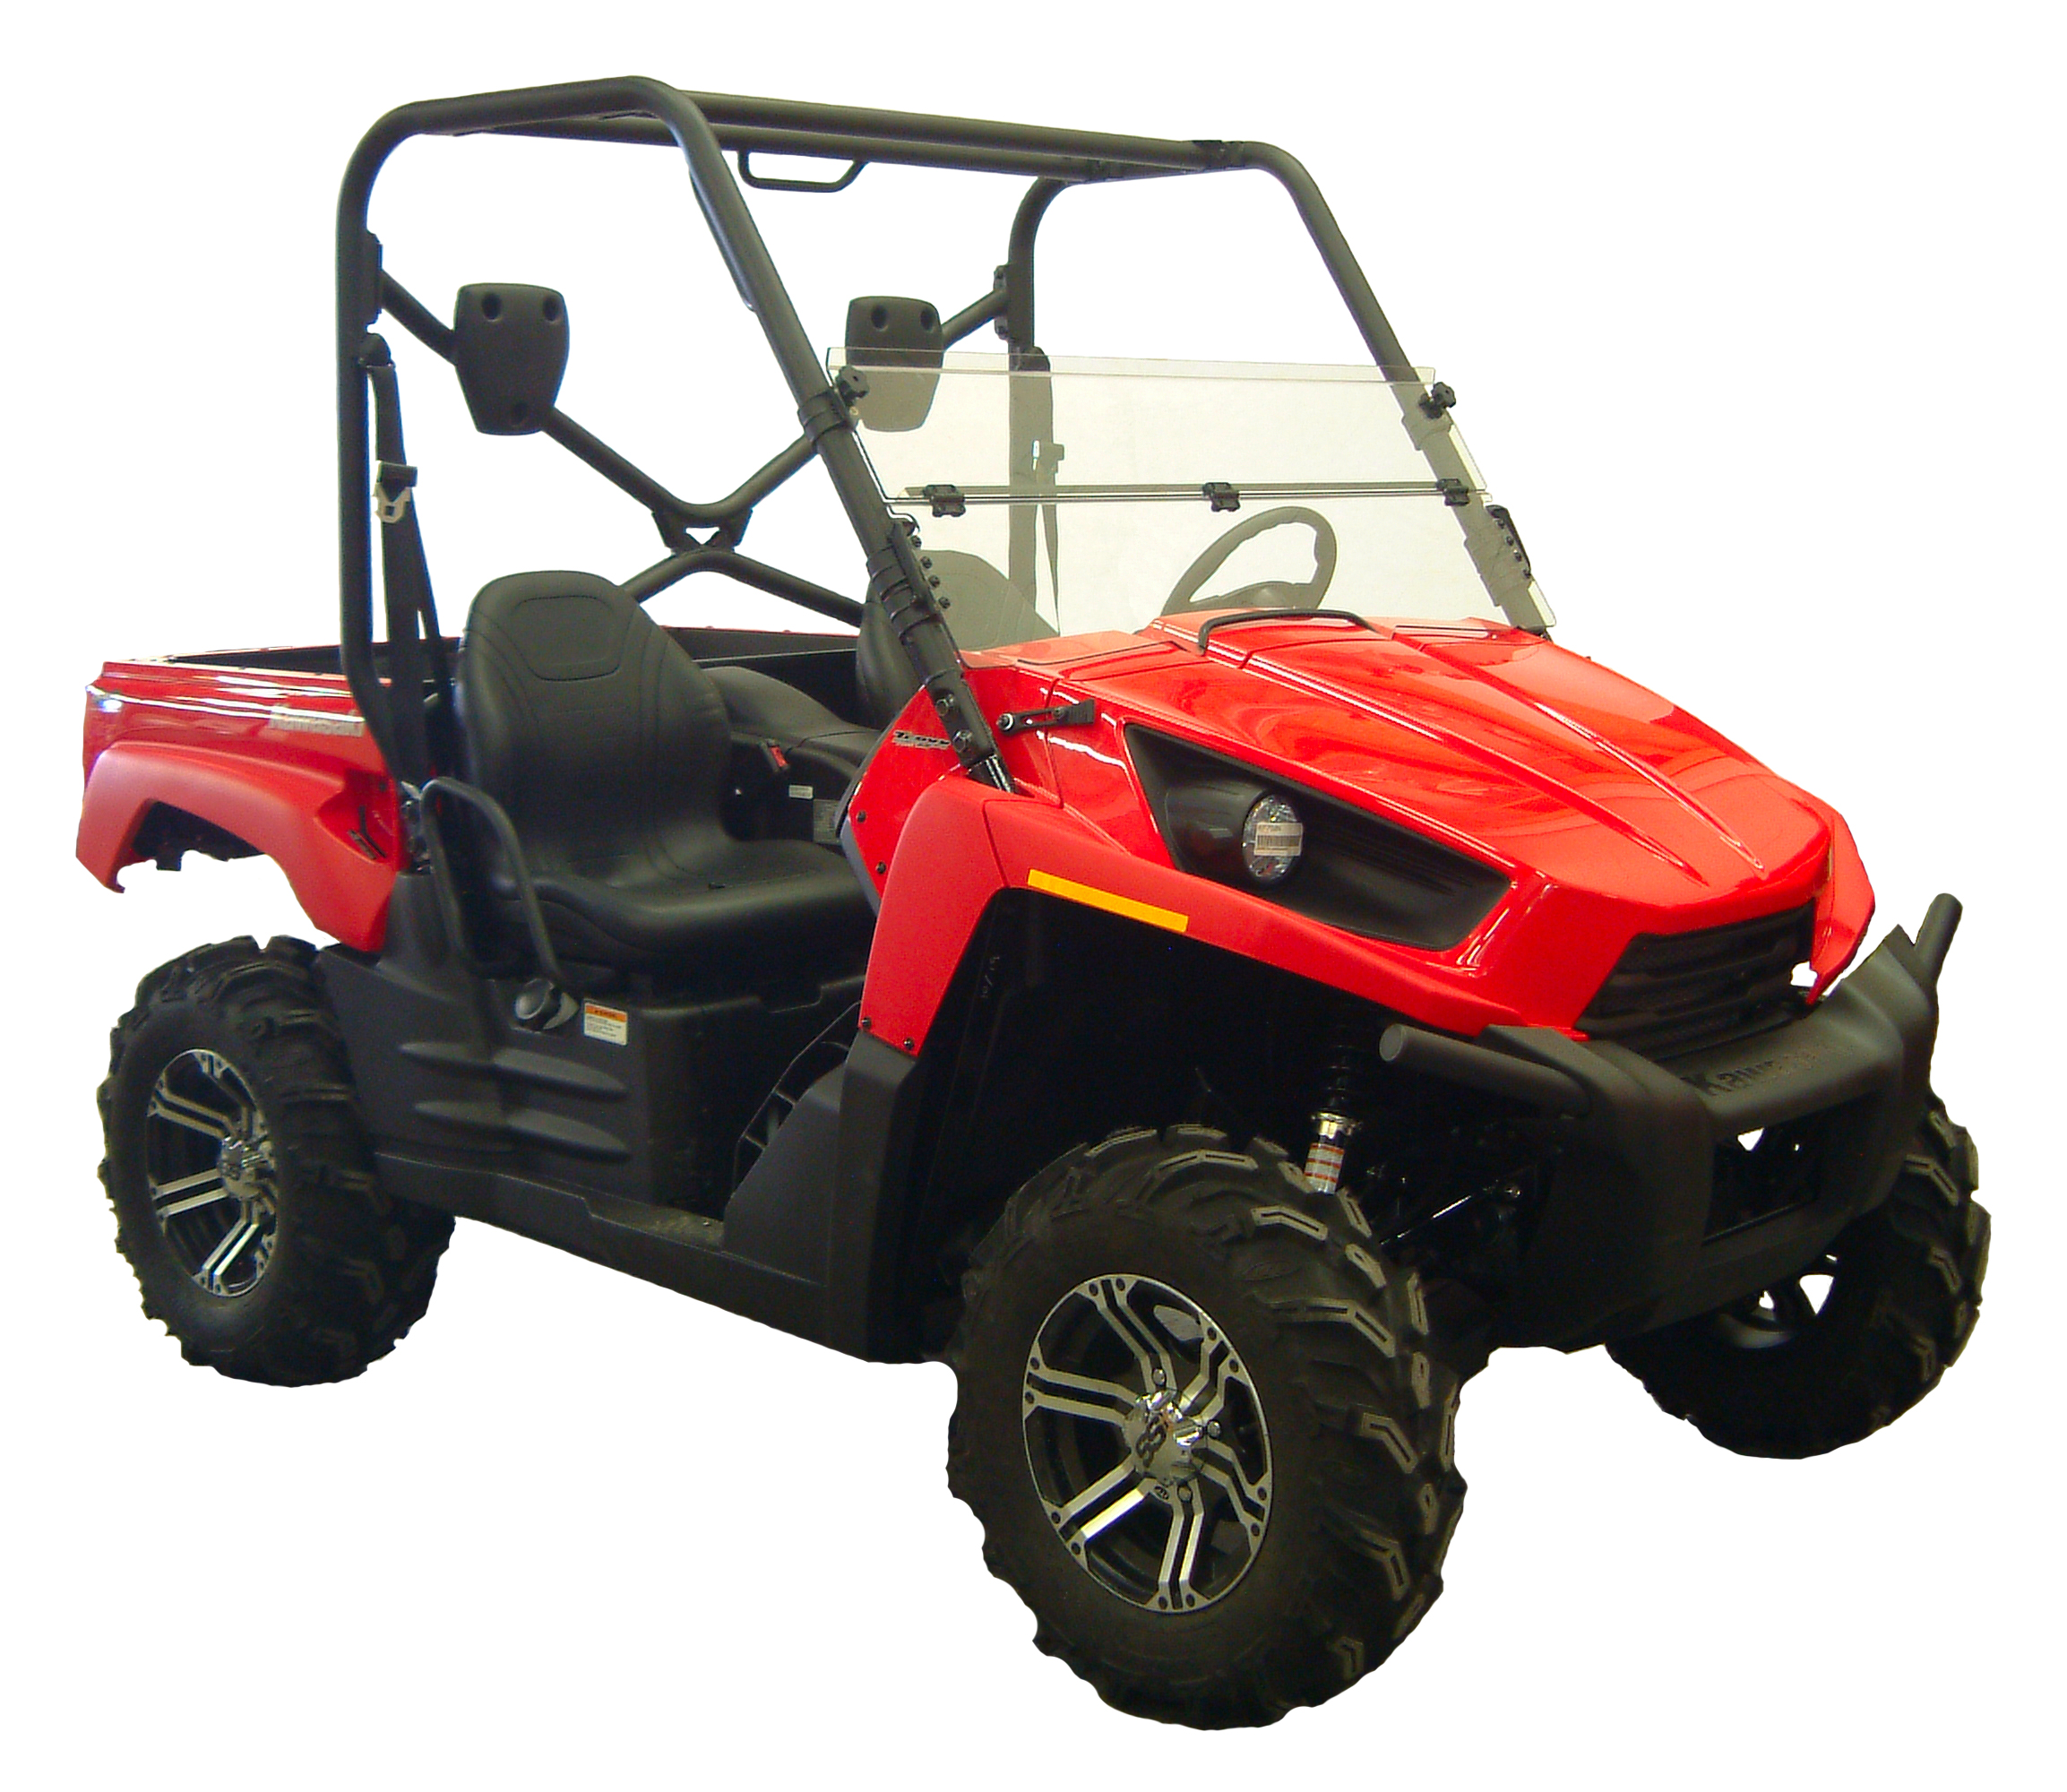 Kawasaki Side By Side >> Directory /images/side by side/KAWASAKI/KAWASAKI TERYX 2010/KAWASAKI TERYX HALF FOLDING ...